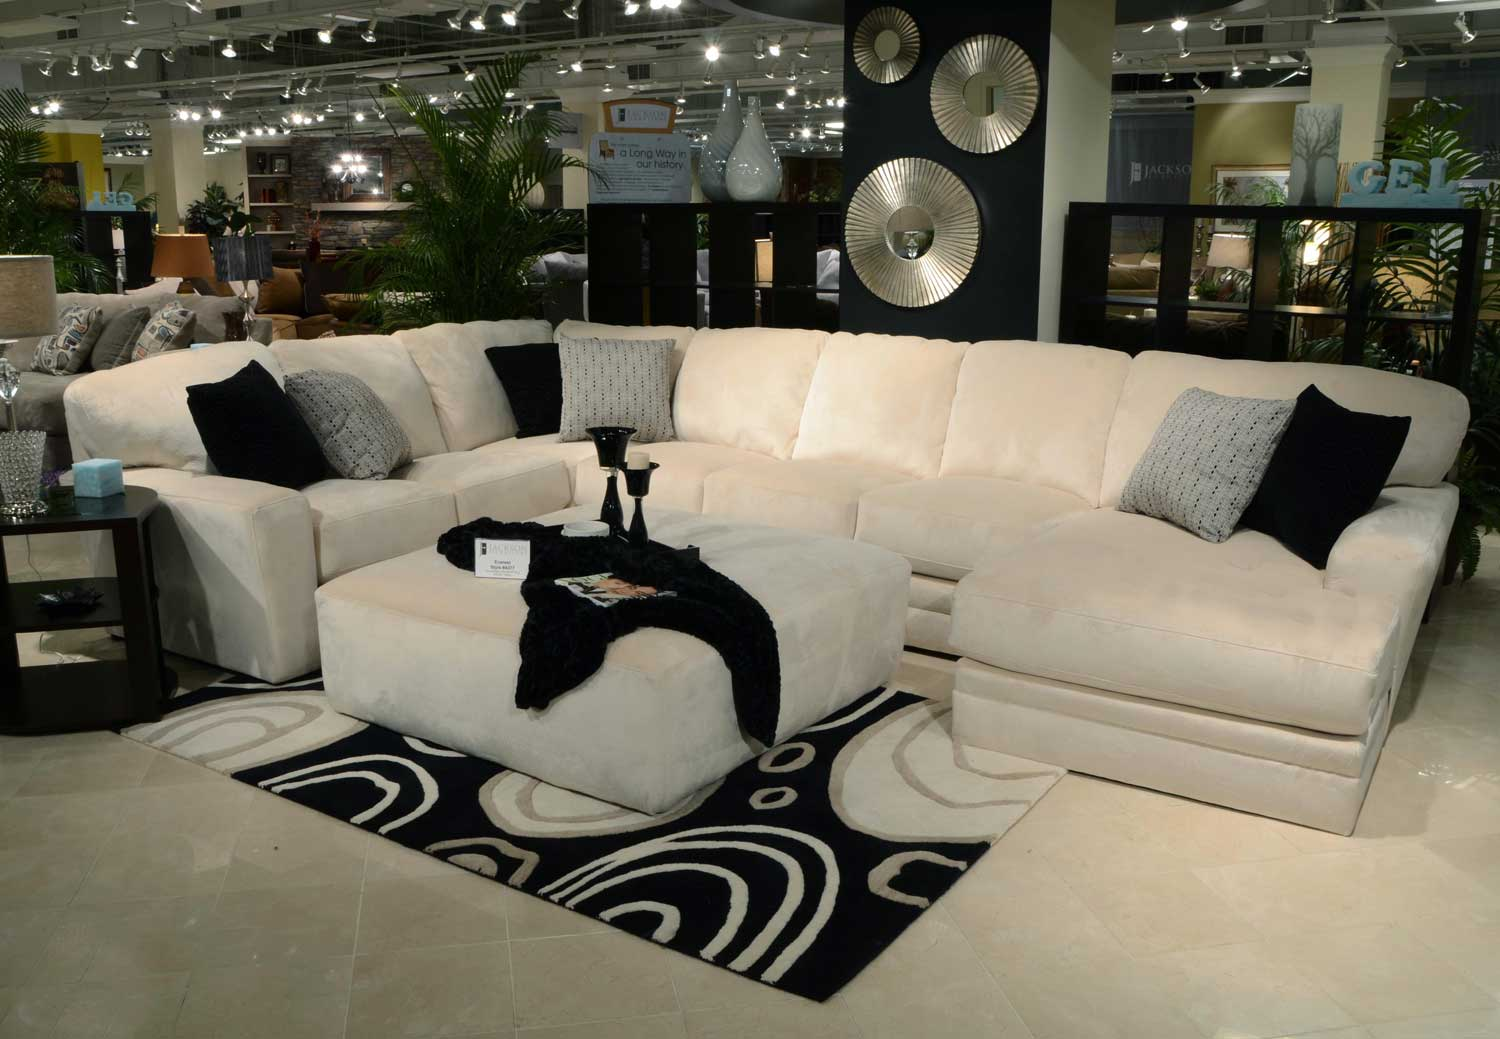 Jackson everest sectional sofa set b ivory jf 4377 sect for Jackson furniture sectional sofa